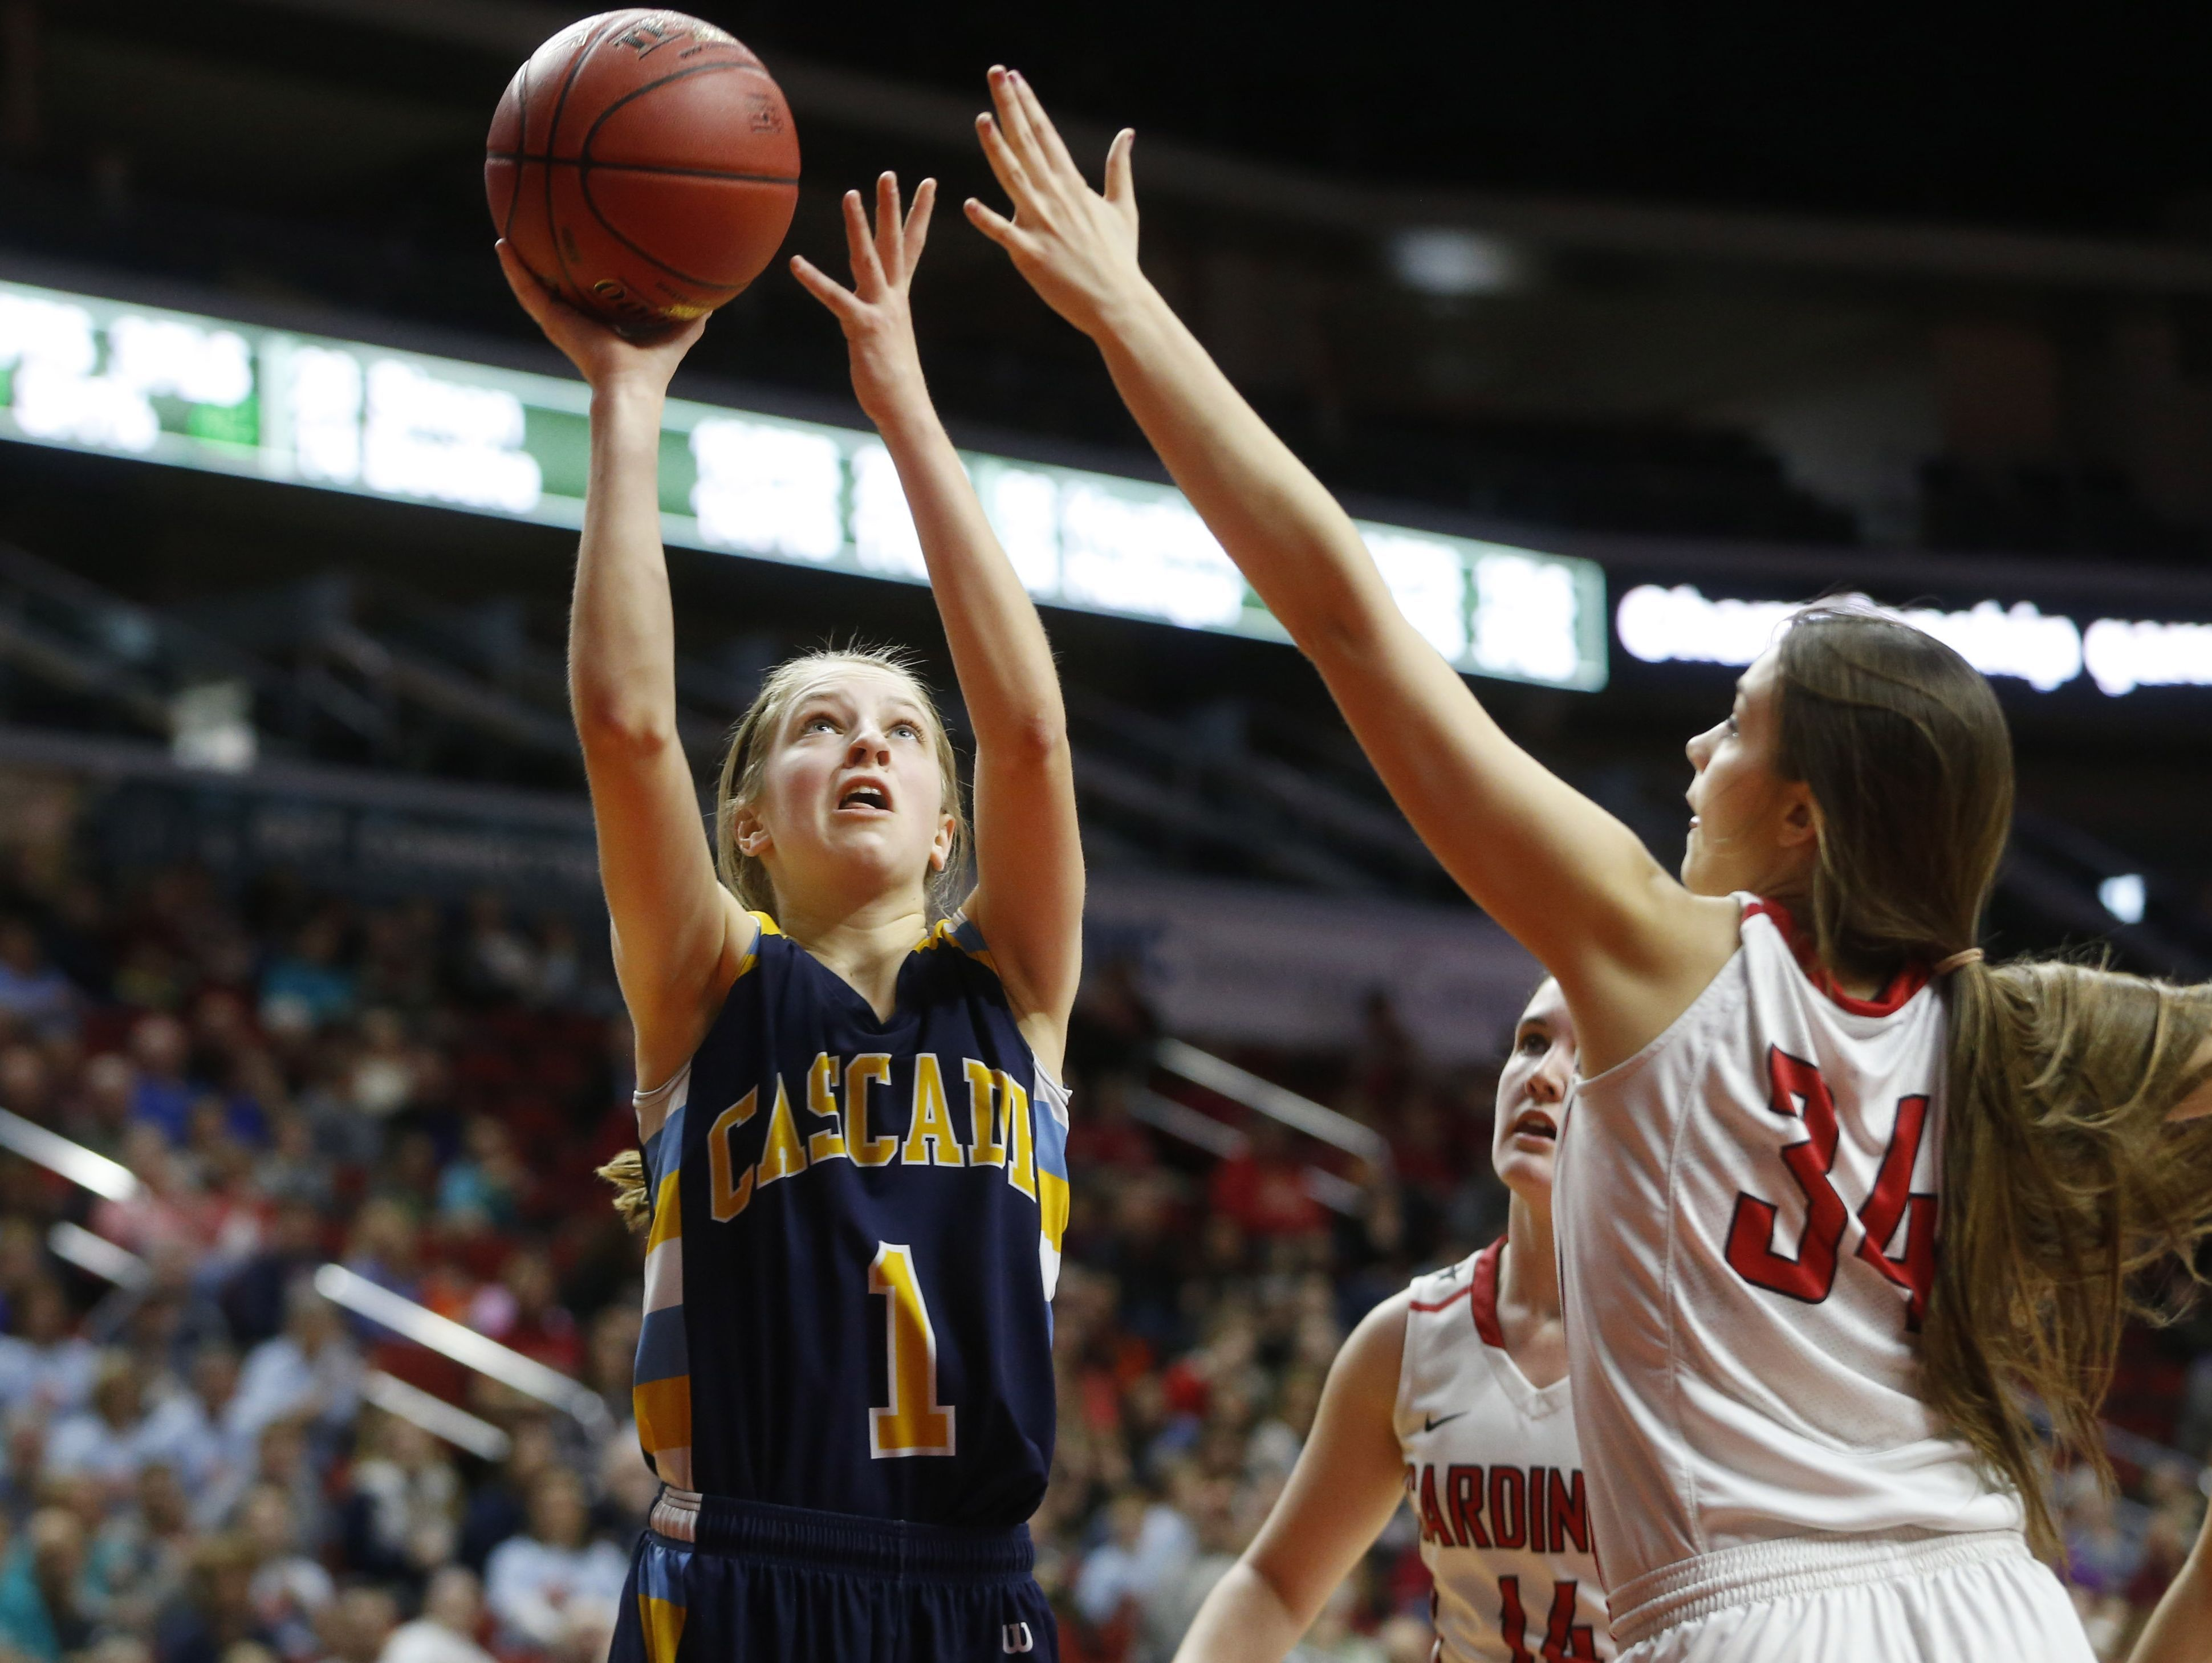 Cascade guard Nicole McDermott (1) takes a shot over Central Decatur on Tuesday, Feb. 28, 2017, during their 2A quarterfinal game at the 2017 Iowa Girls' State Basketball Tournament at Wells Fargo Arena in Des Moines.